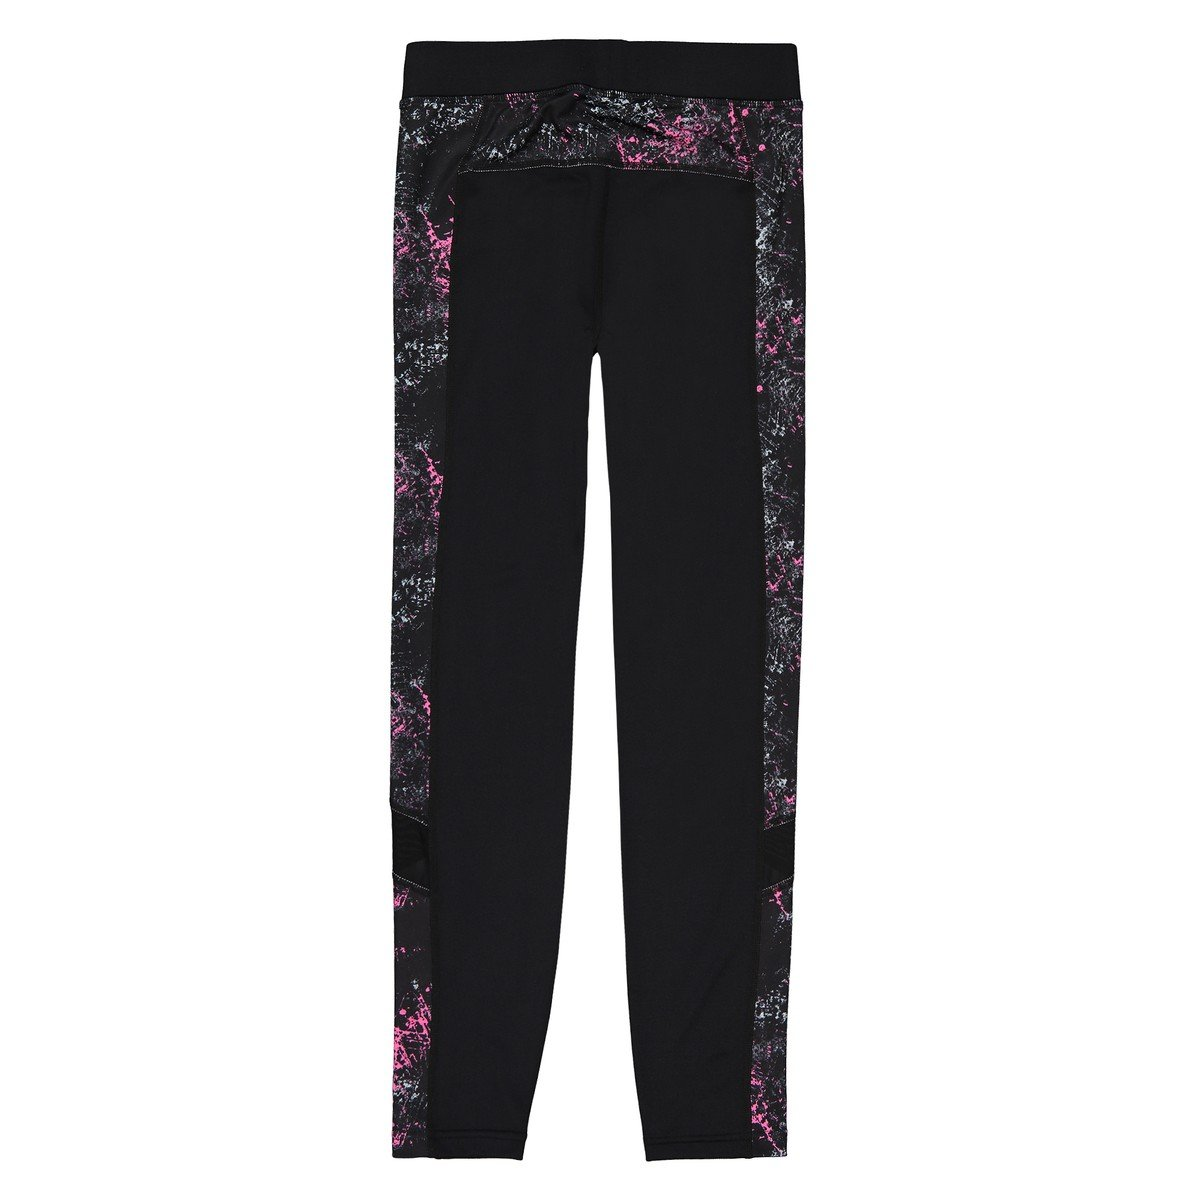 La Redoute Collections Big Girls Printed Sports Leggings 10-16 Years